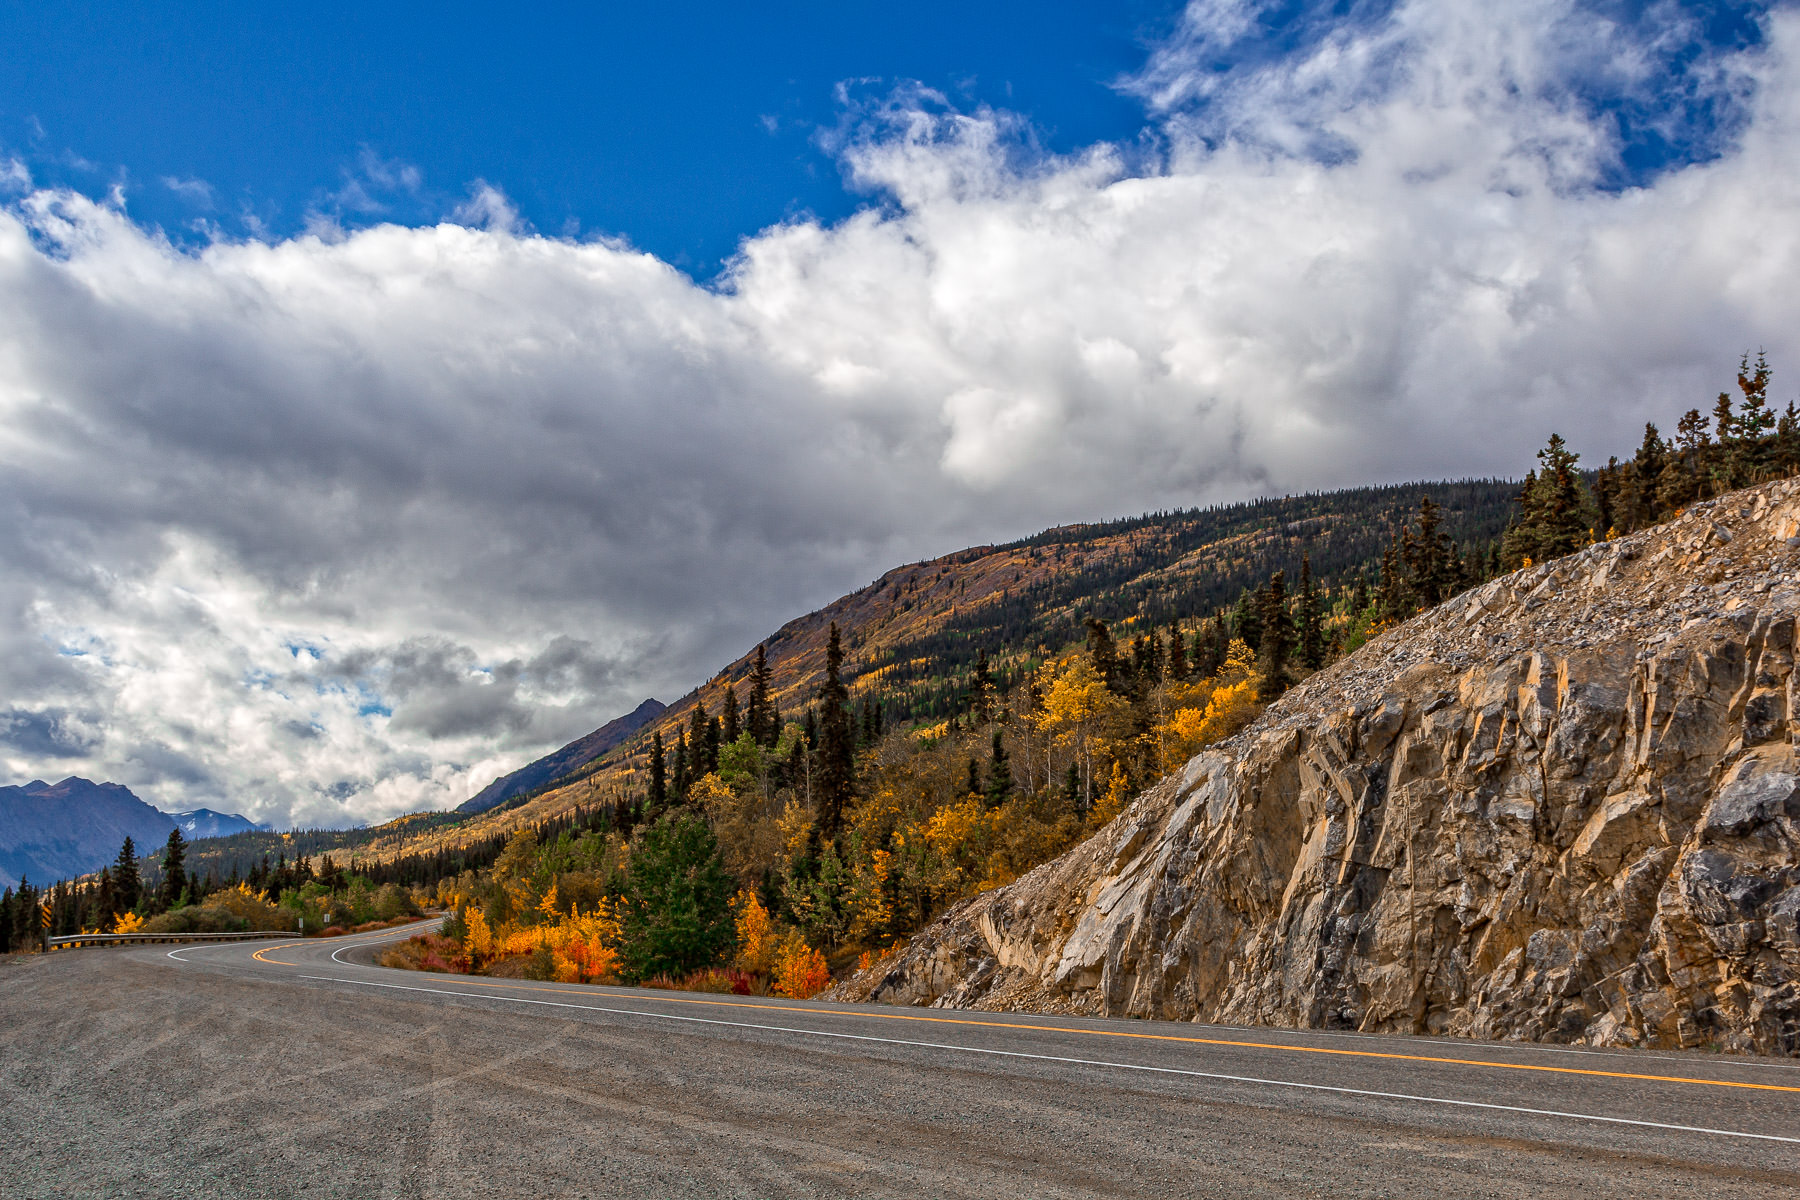 The Klondike Highway snakes around the mountains of the Yukon Territory, Canada.